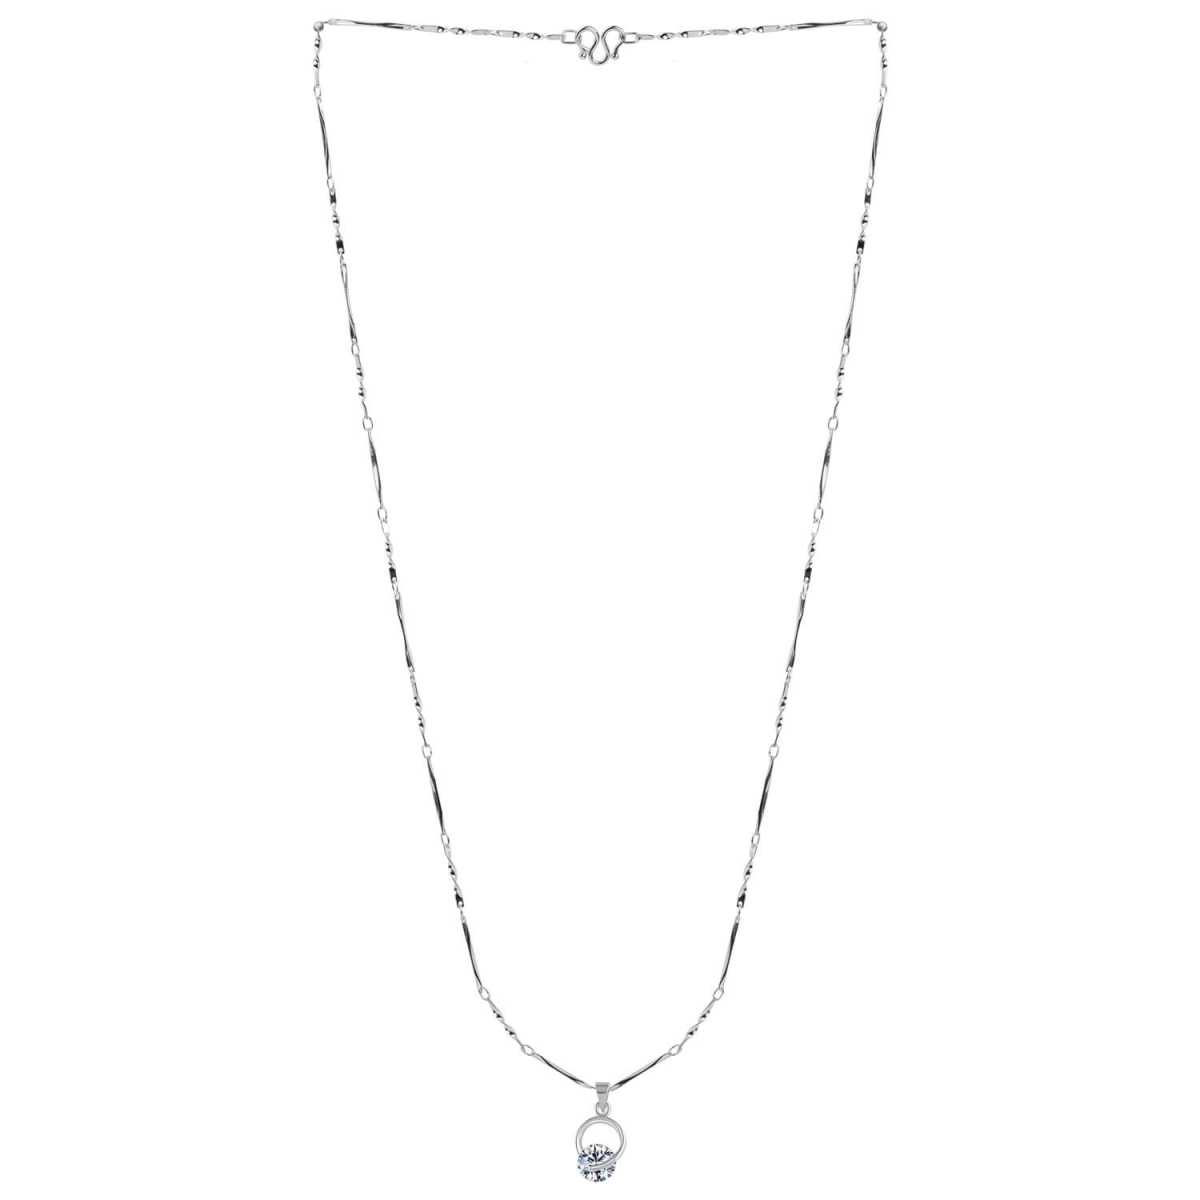 SILVER SHINE  Silver Plated Delicated Stylish Chain Solitaire Diamond Pendant For Women